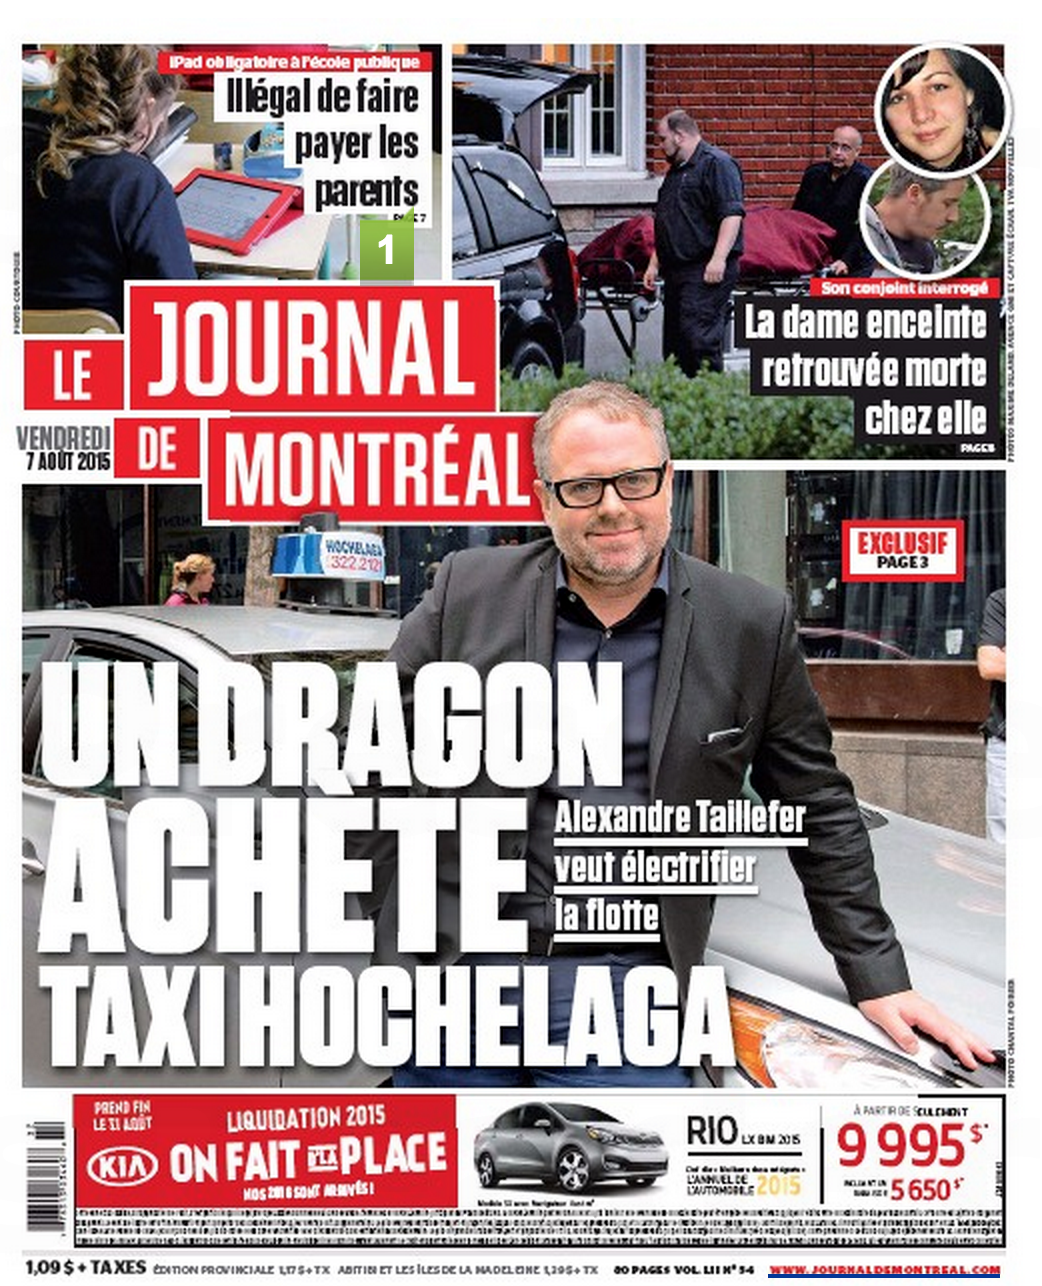 Journal_Montreal_7_August_2015